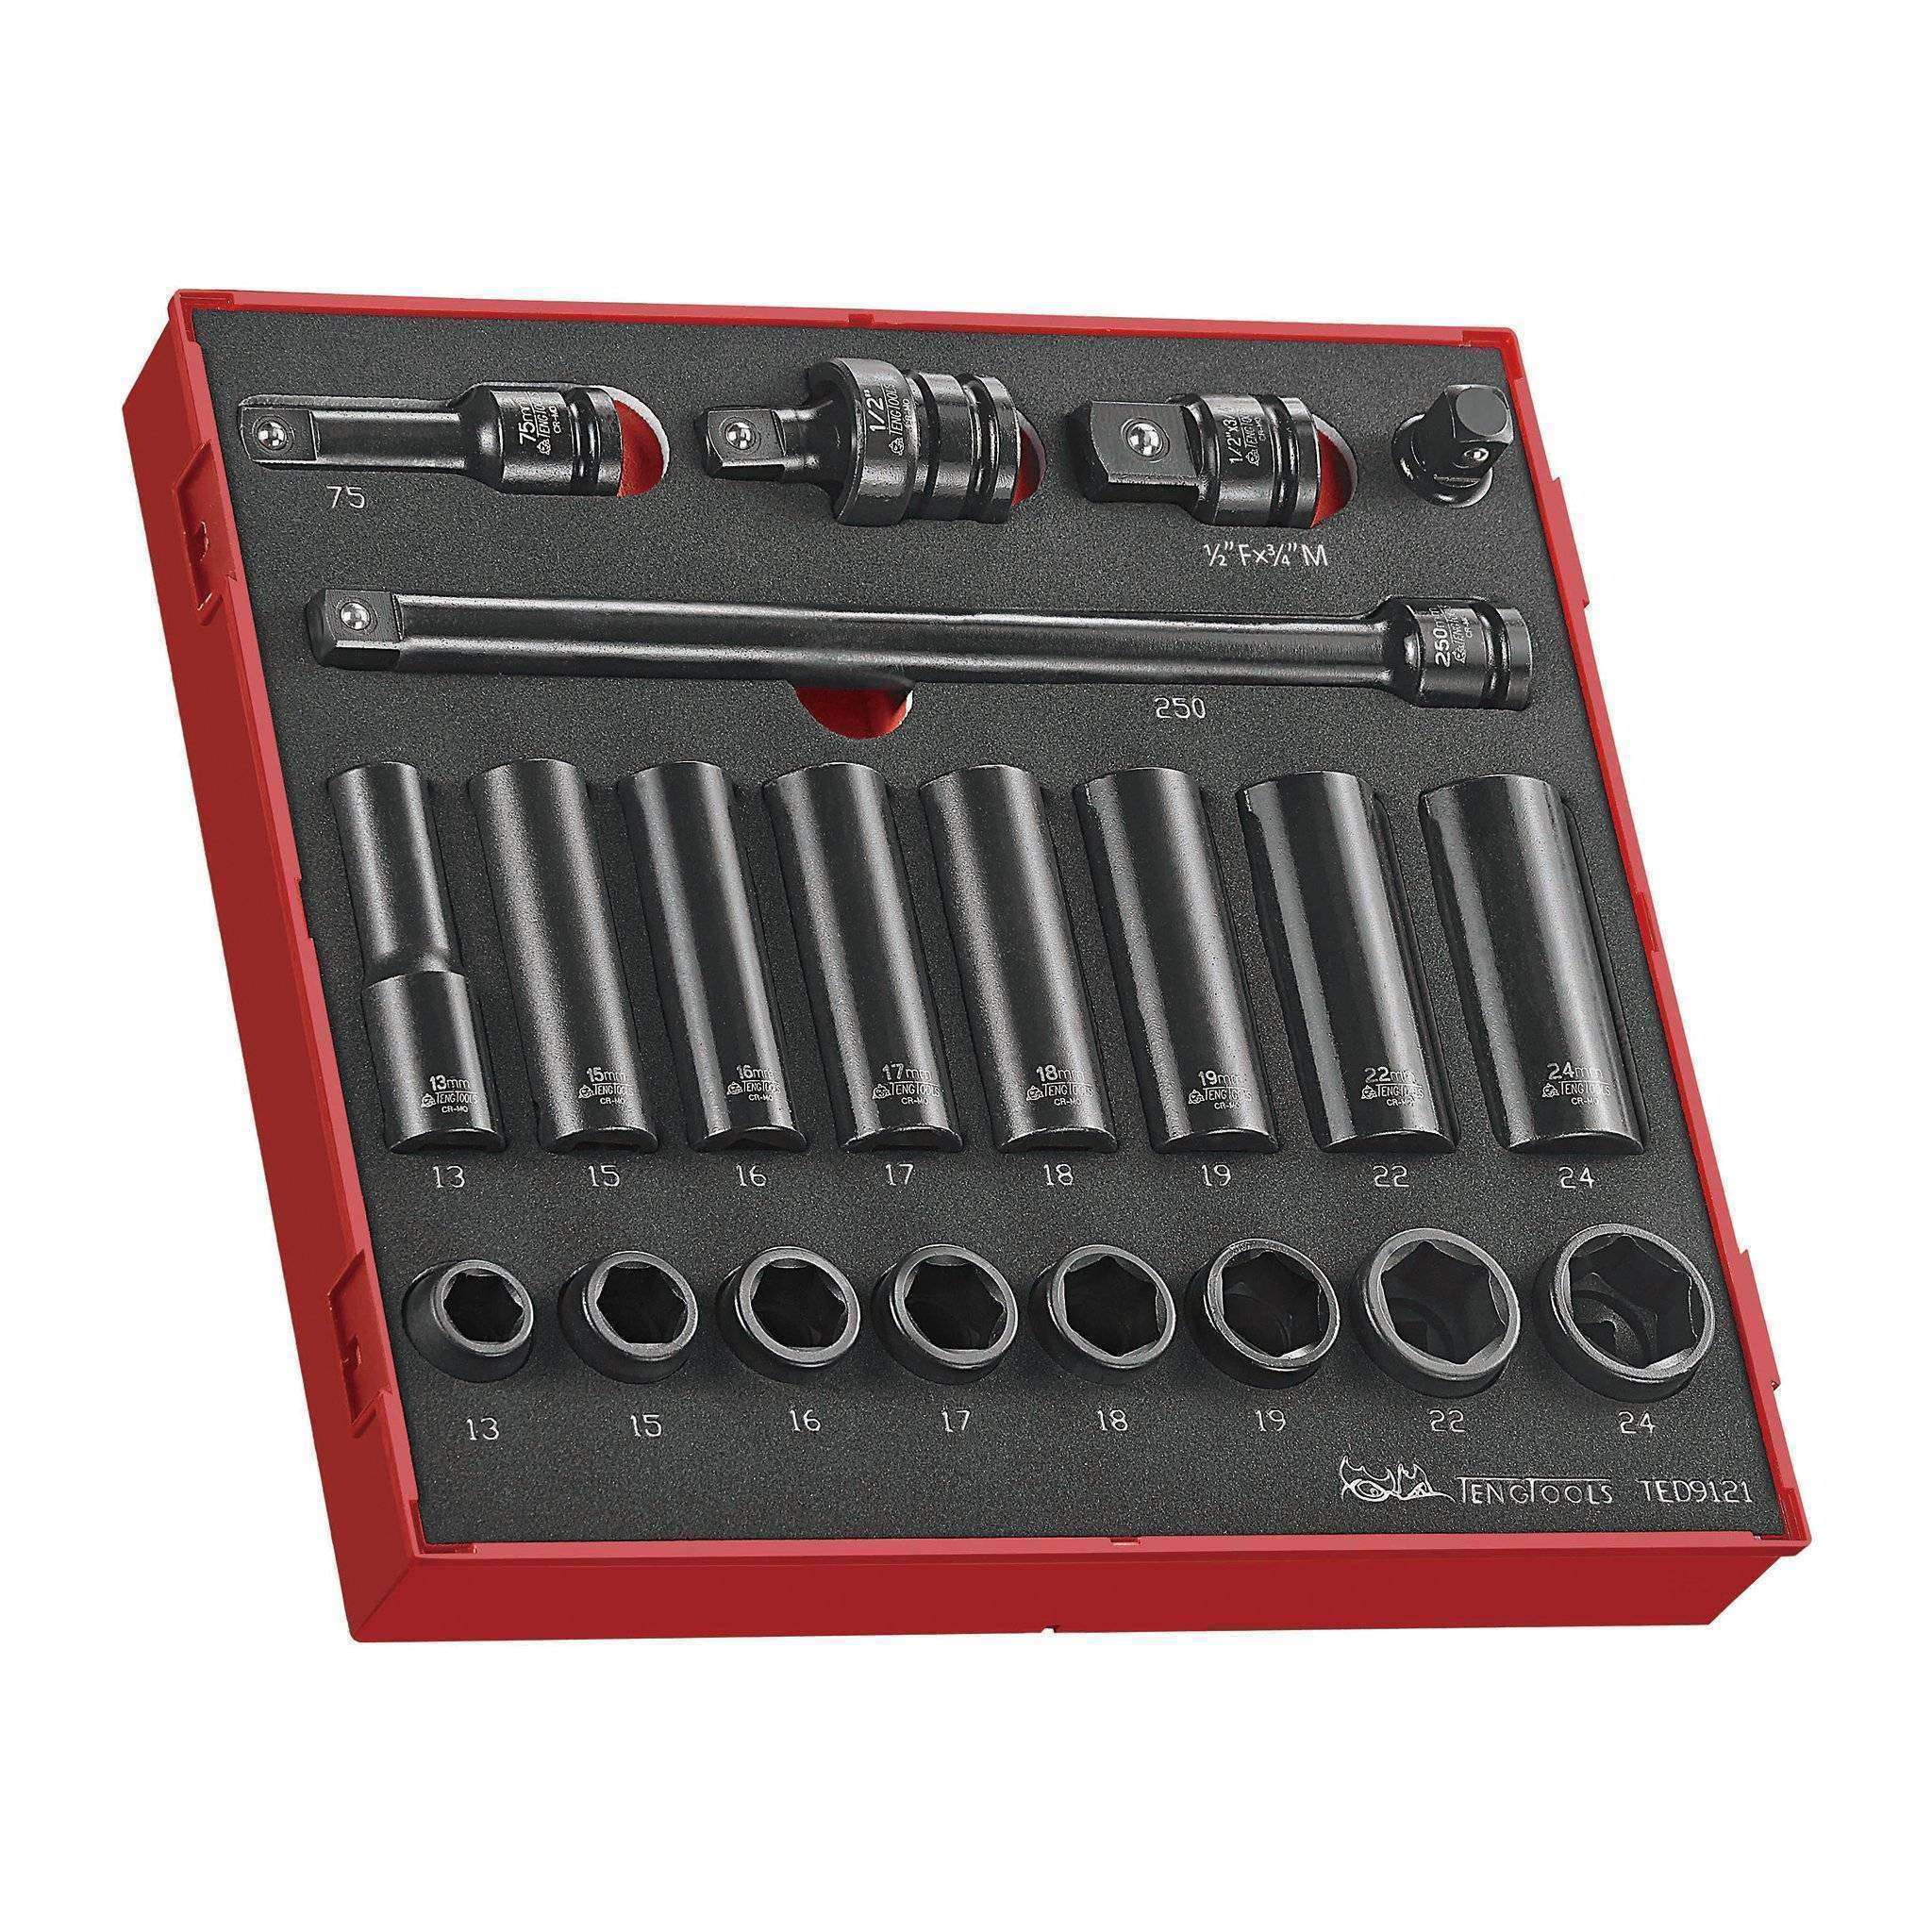 Teng Tools - 21 Piece 1/2 inch Drive Impact Socket Set in EVA Tray - TEN-O-TED9121 - Teng Tools USA